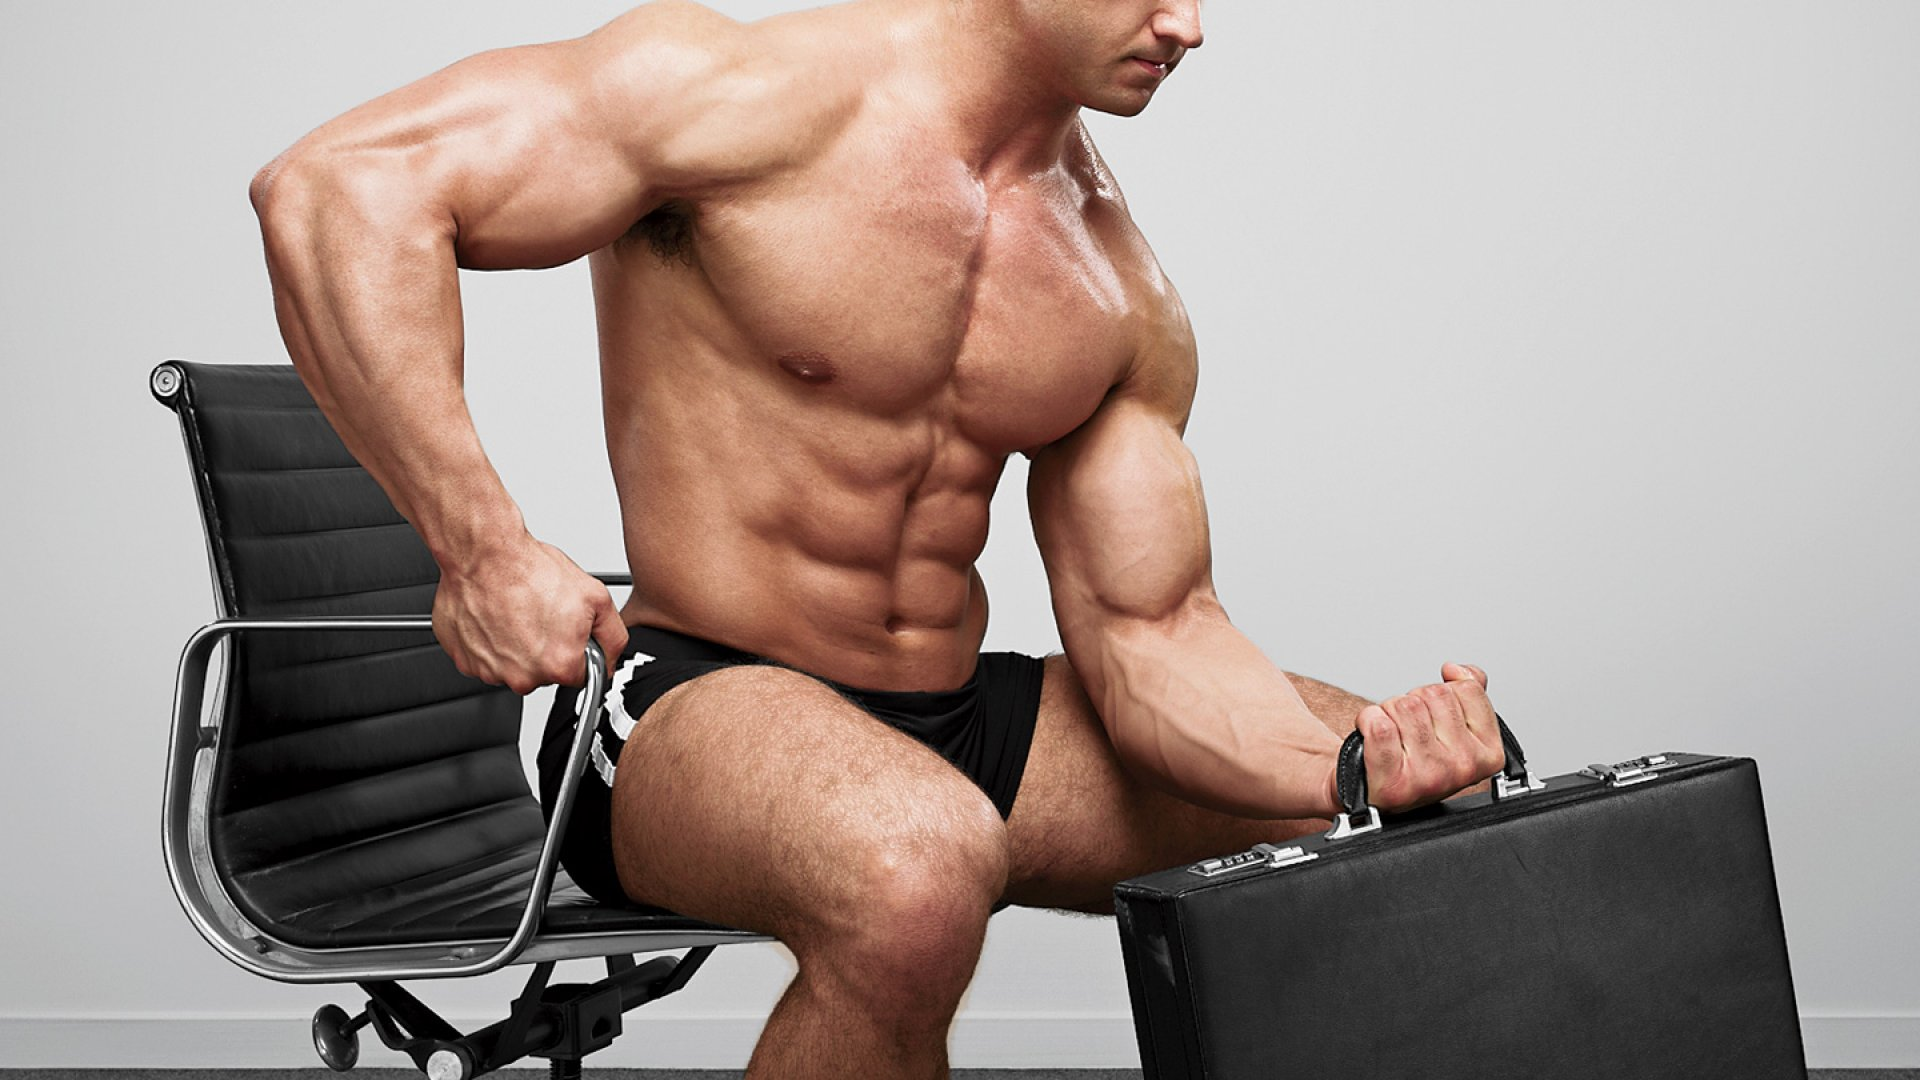 <b>GET PUMPED</b><br> Working out can actually improve brain function, studies show. aerobic exercise can even reverse some of the effects of aging.